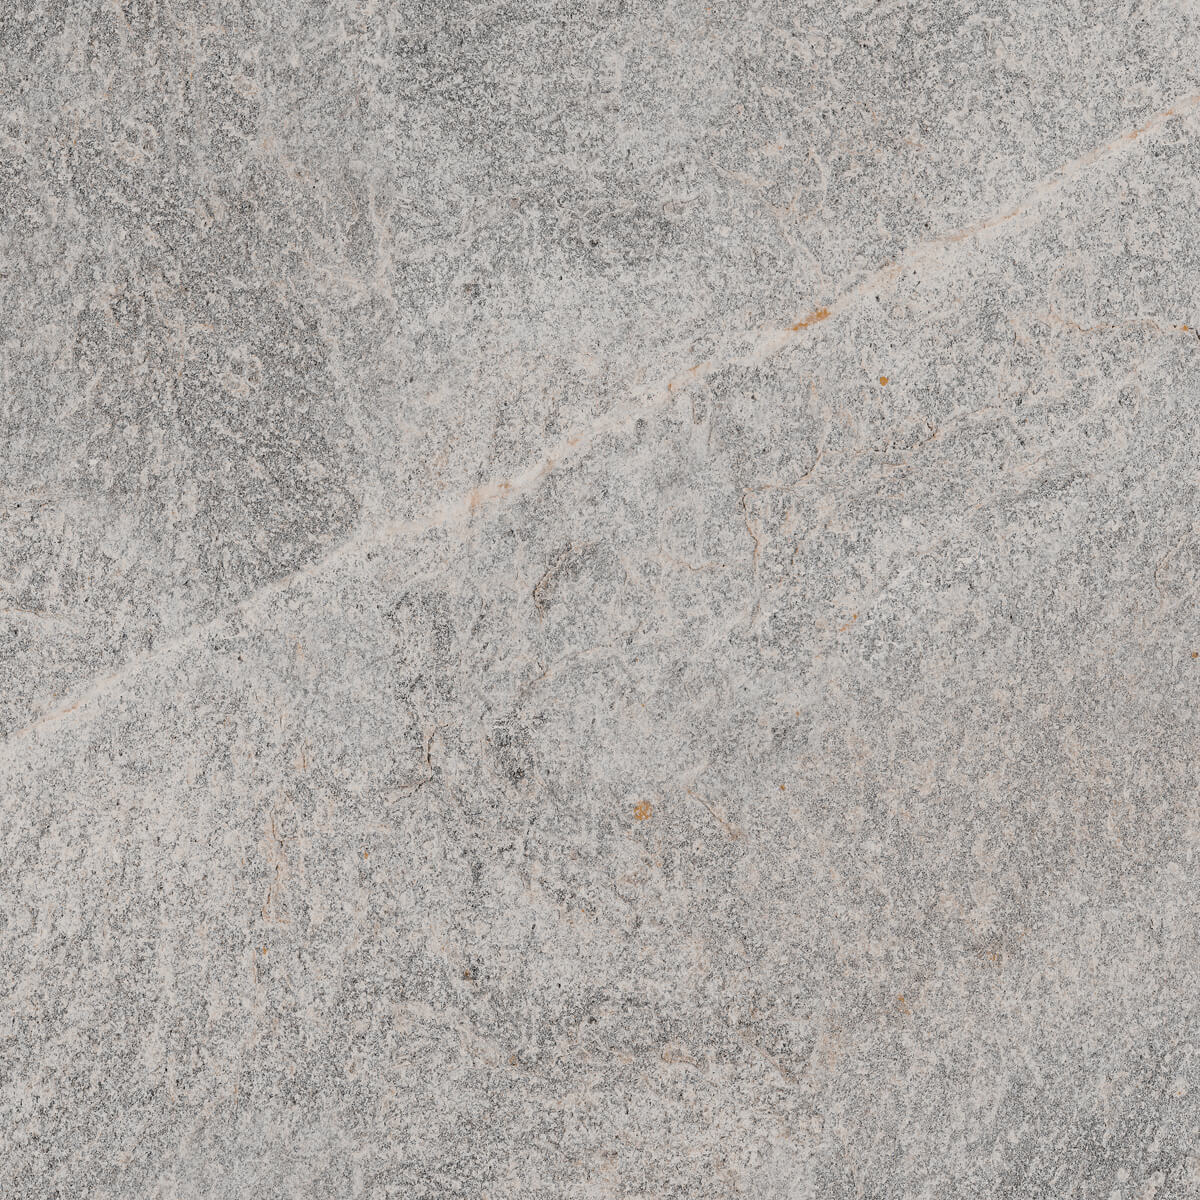 Porcelain Stoneware Stone Effect Eikon Tiles Collection